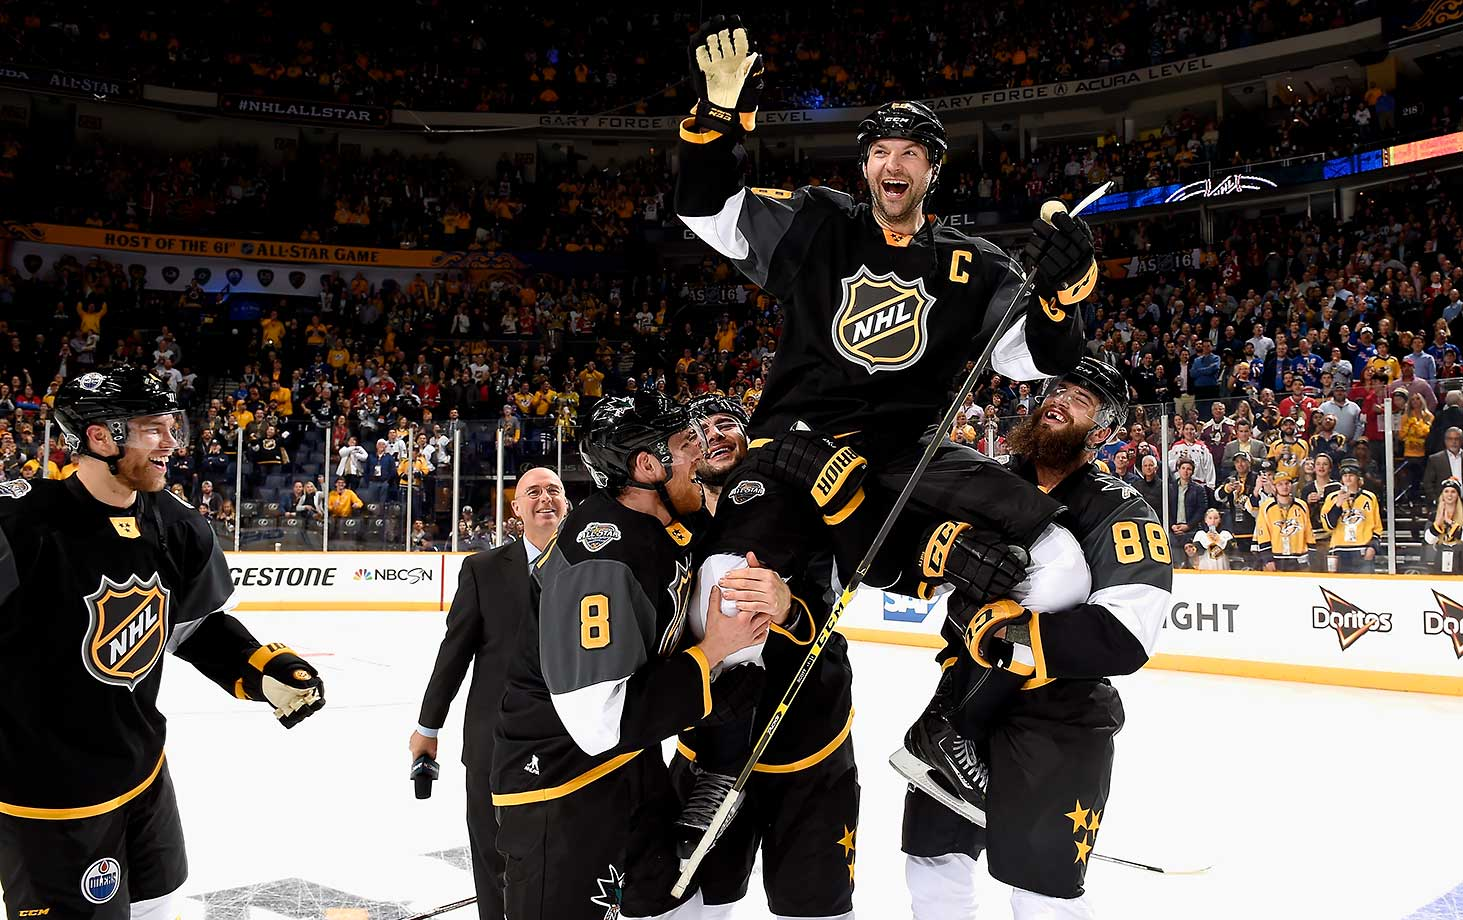 John Scott of the Arizona Coyotes is held up by teammates Mark Giordano of the Calgary Flames and Brent Burns and Joe Pavelski of the San Jose Sharks of the Pacific Division All-Stars after defeating the Atlantic Division All-Stars 1-0 in the 2016 Honda NHL All-Star Final Game at Bridgestone Arena in Nashville.